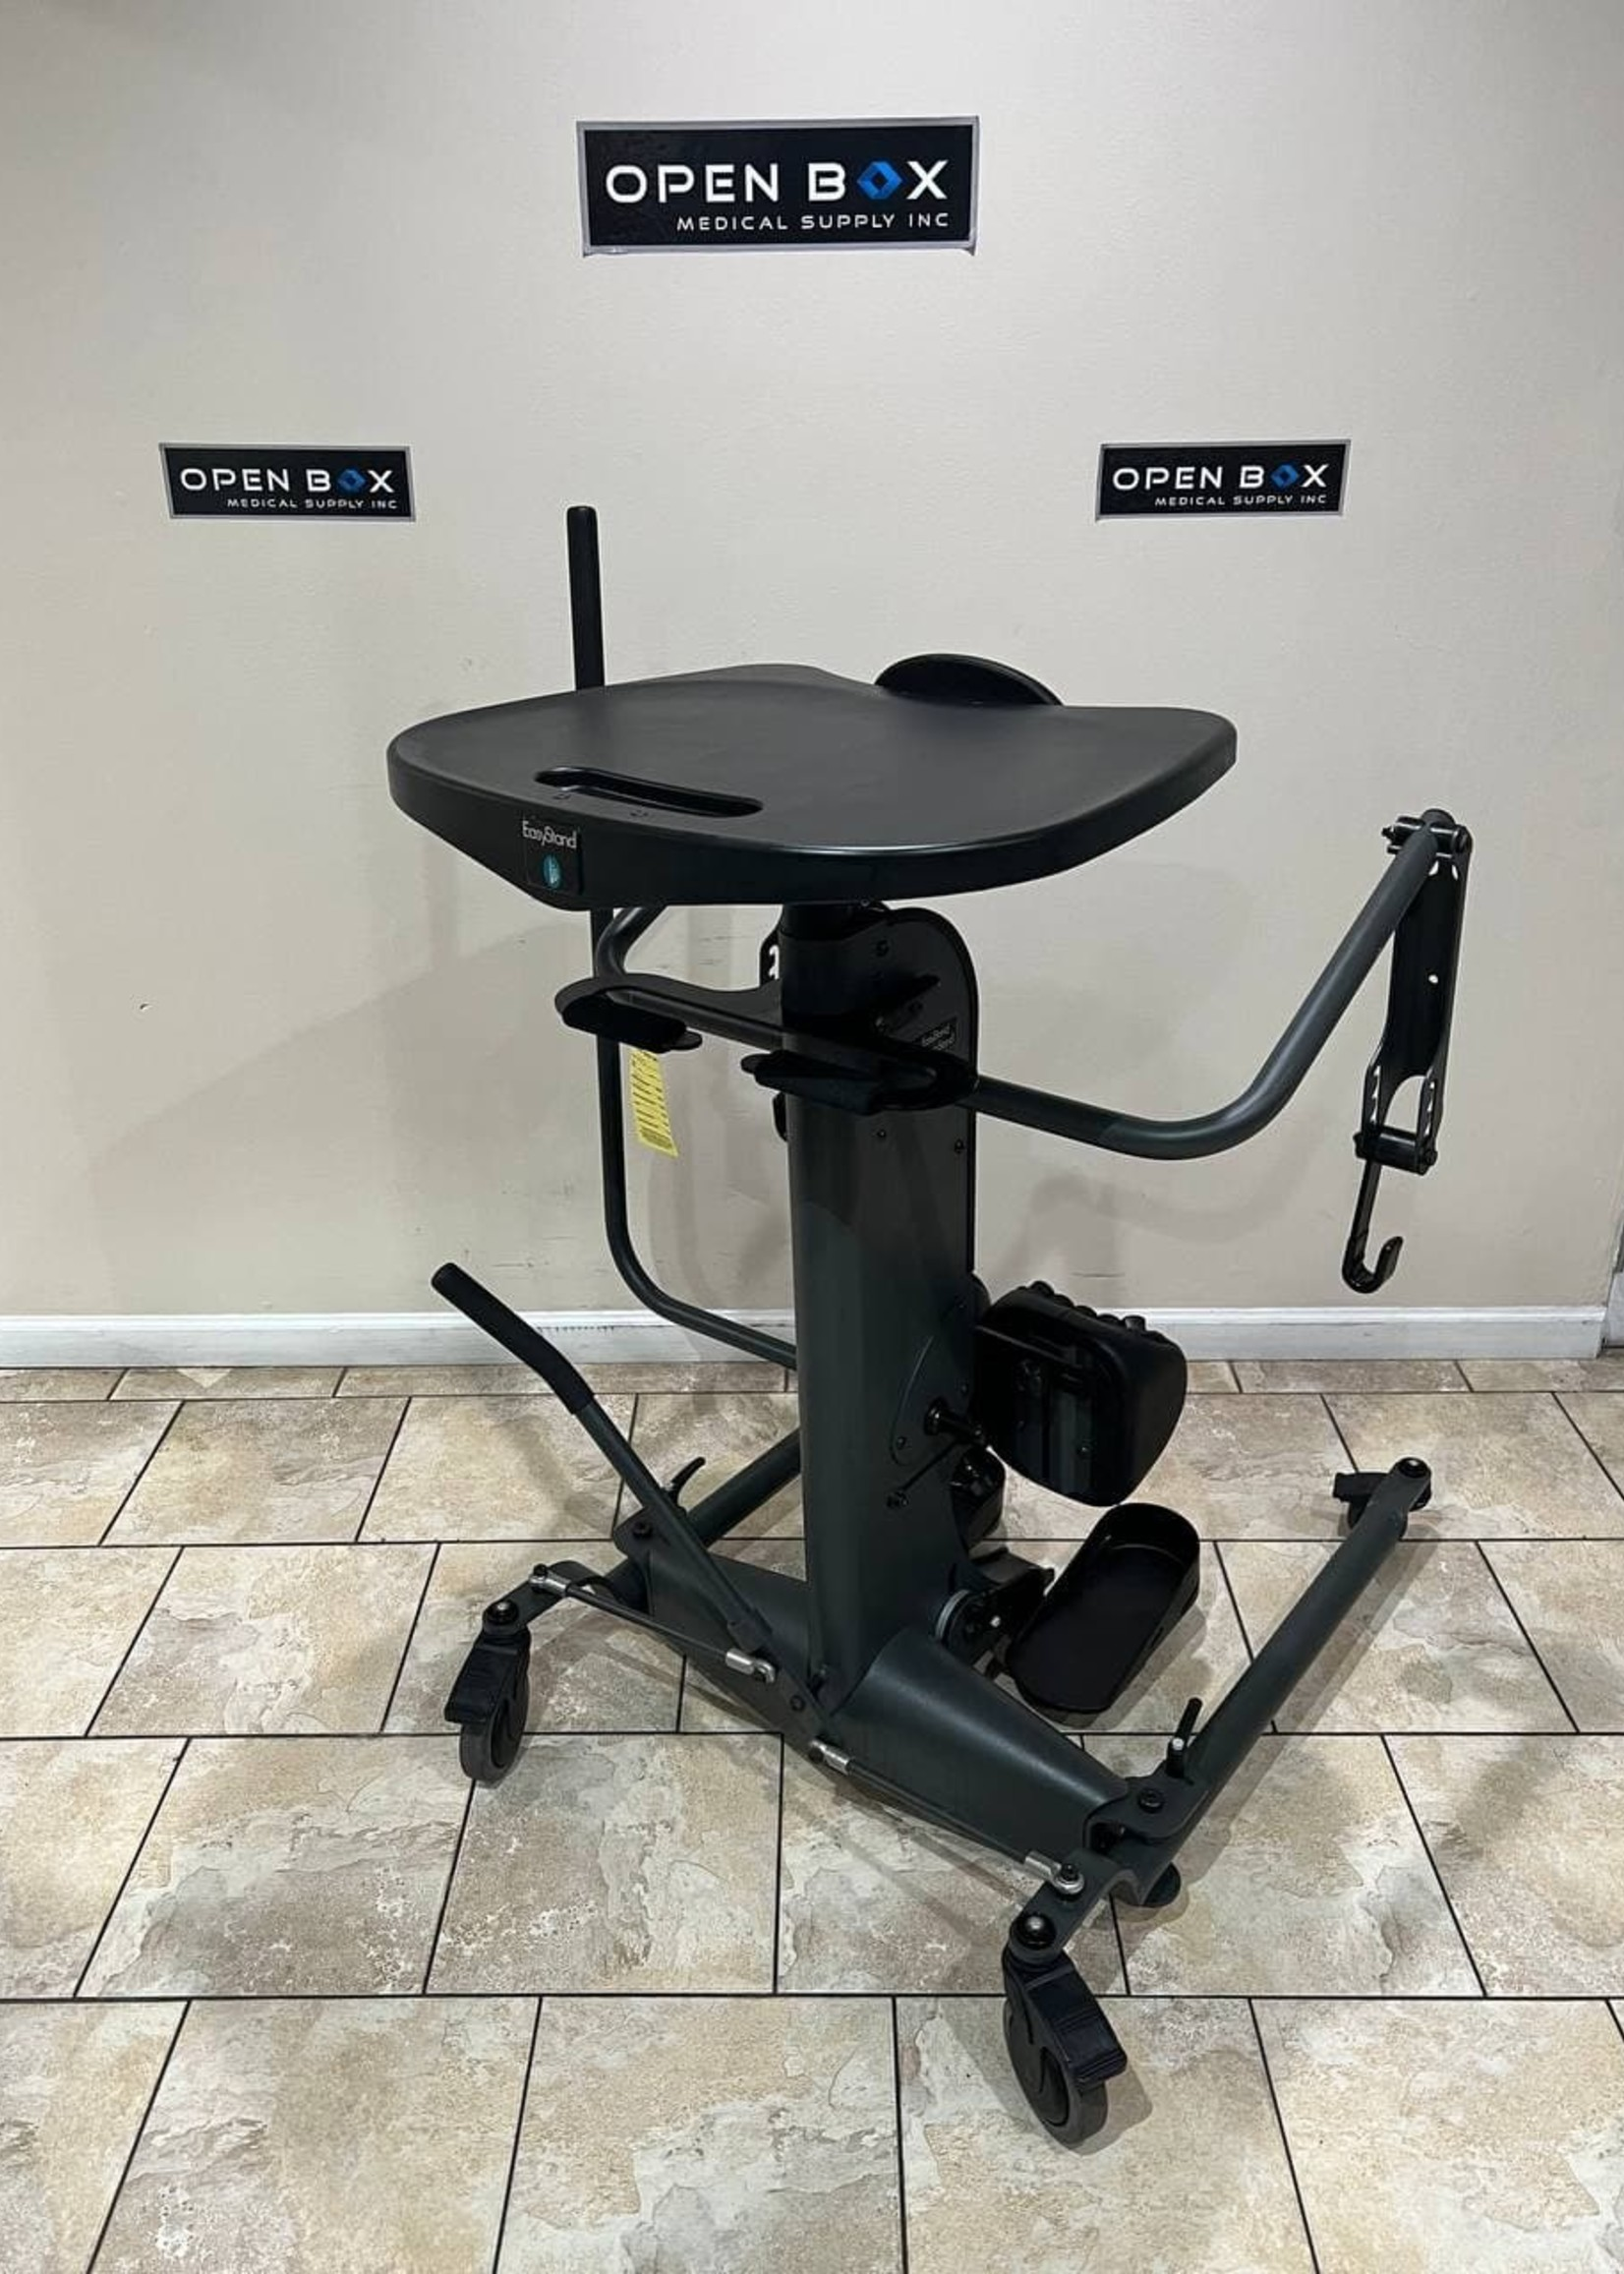 EasyStand Easy standStrapStand Standing Frame